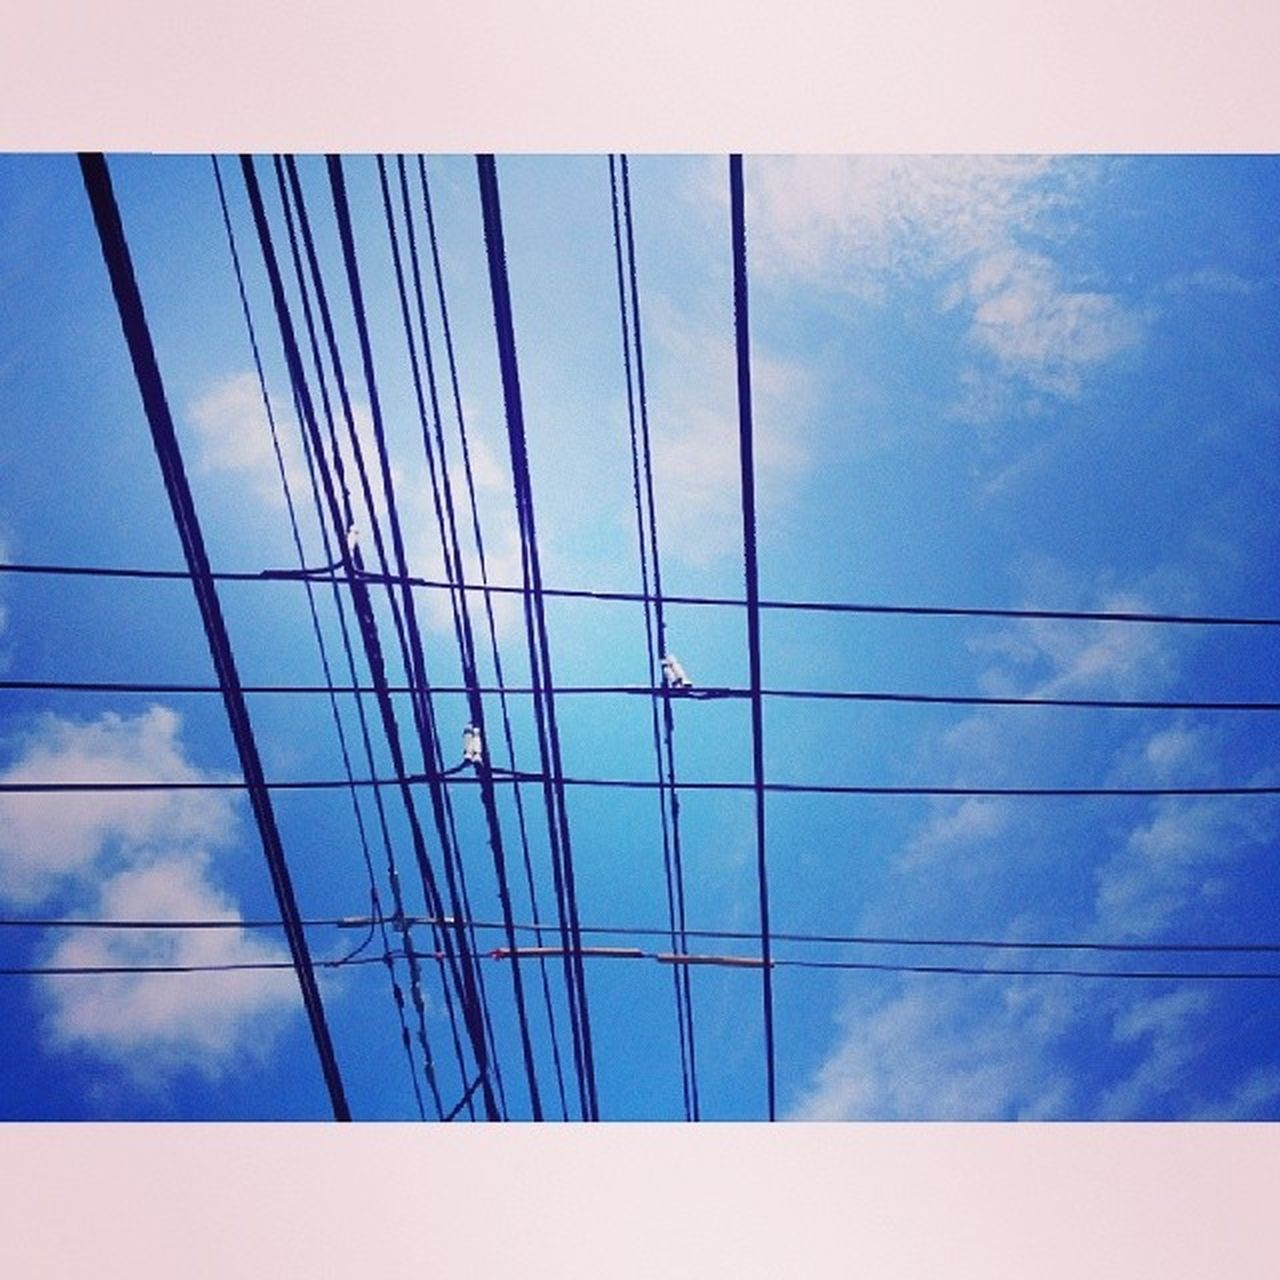 cable, blue, connection, sky, low angle view, no people, day, outdoors, close-up